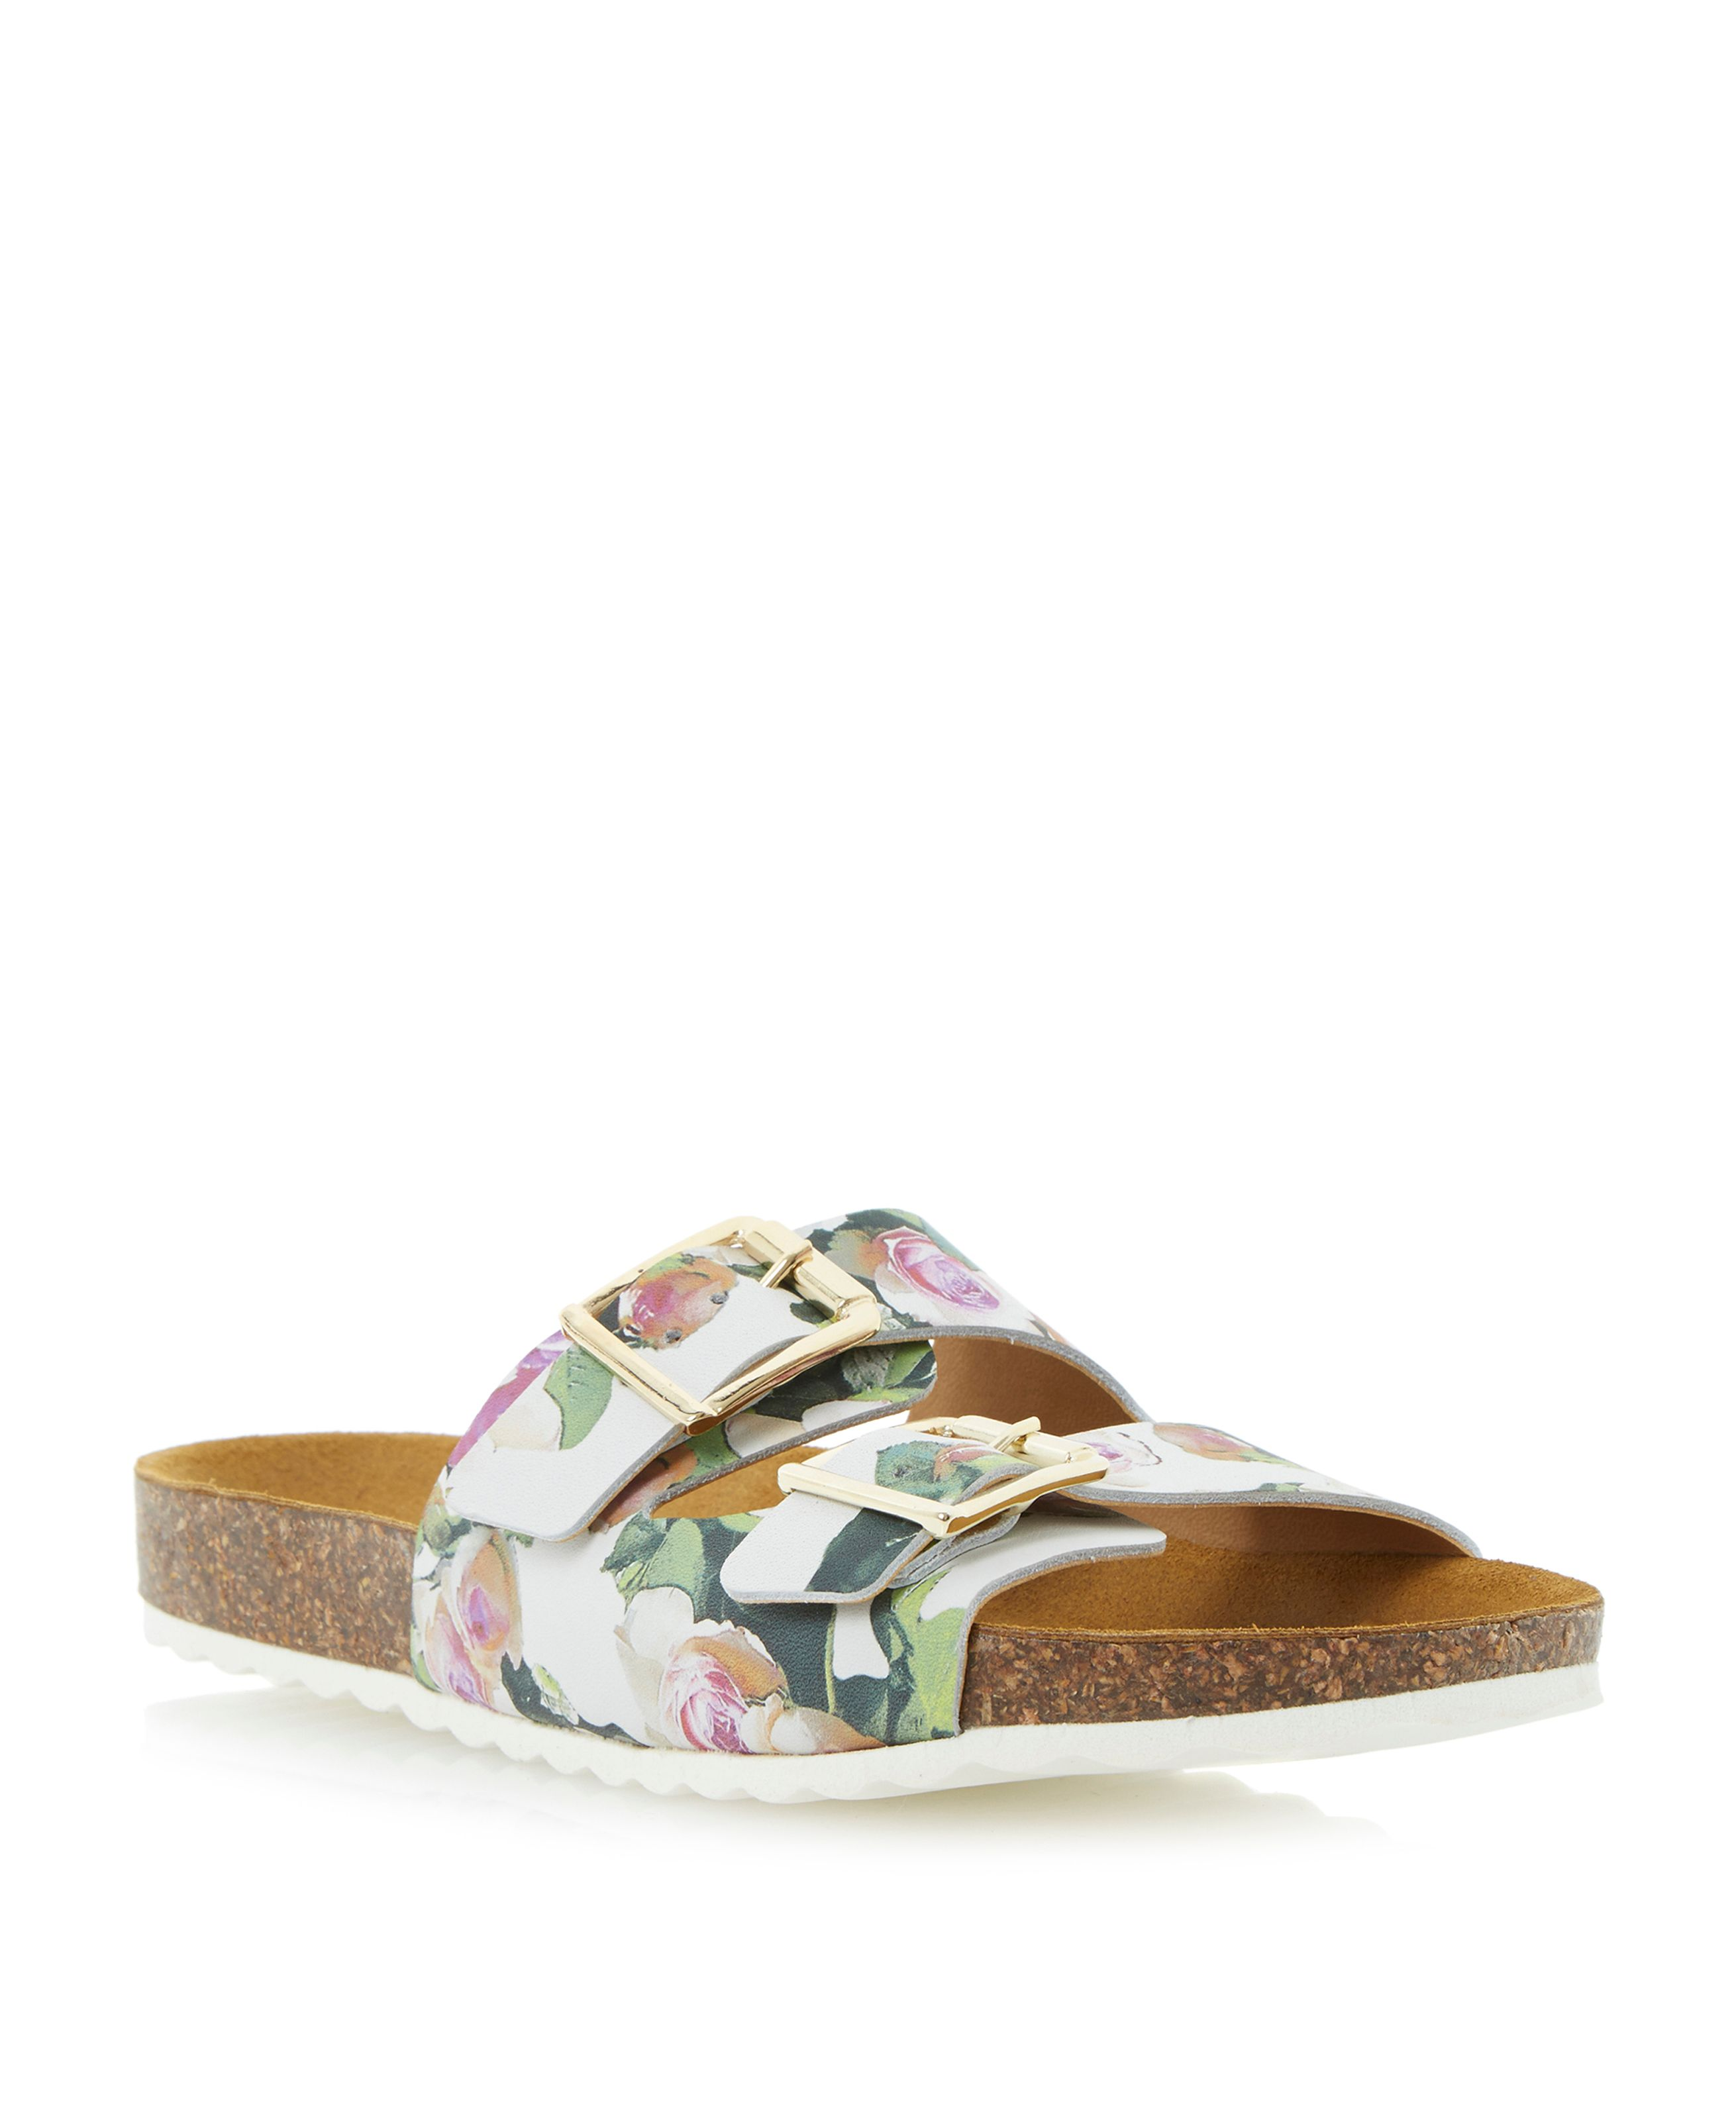 Jane leather floral footbed sandals